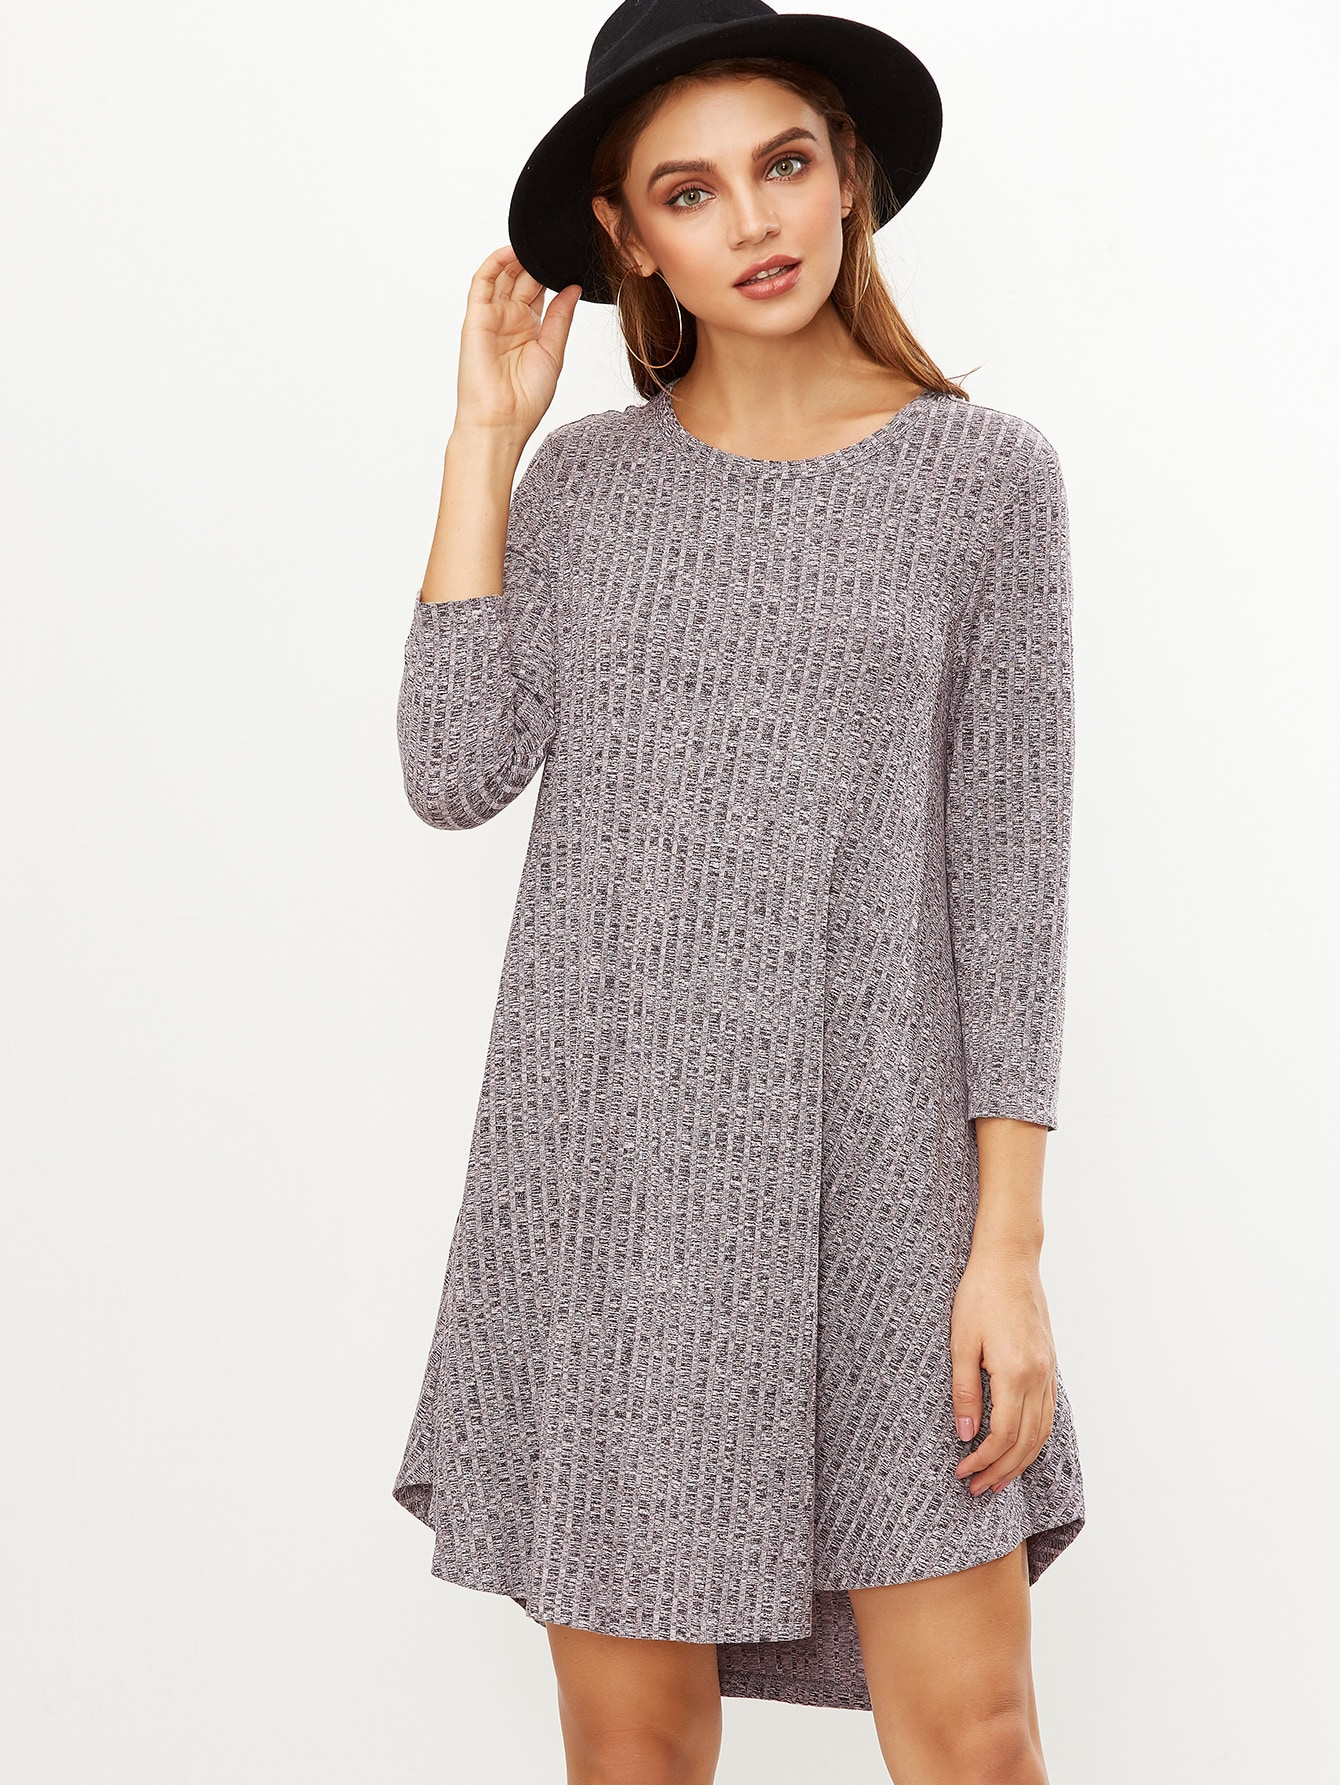 Grey Marled Knit Ribbed Swing Dress dress161110722